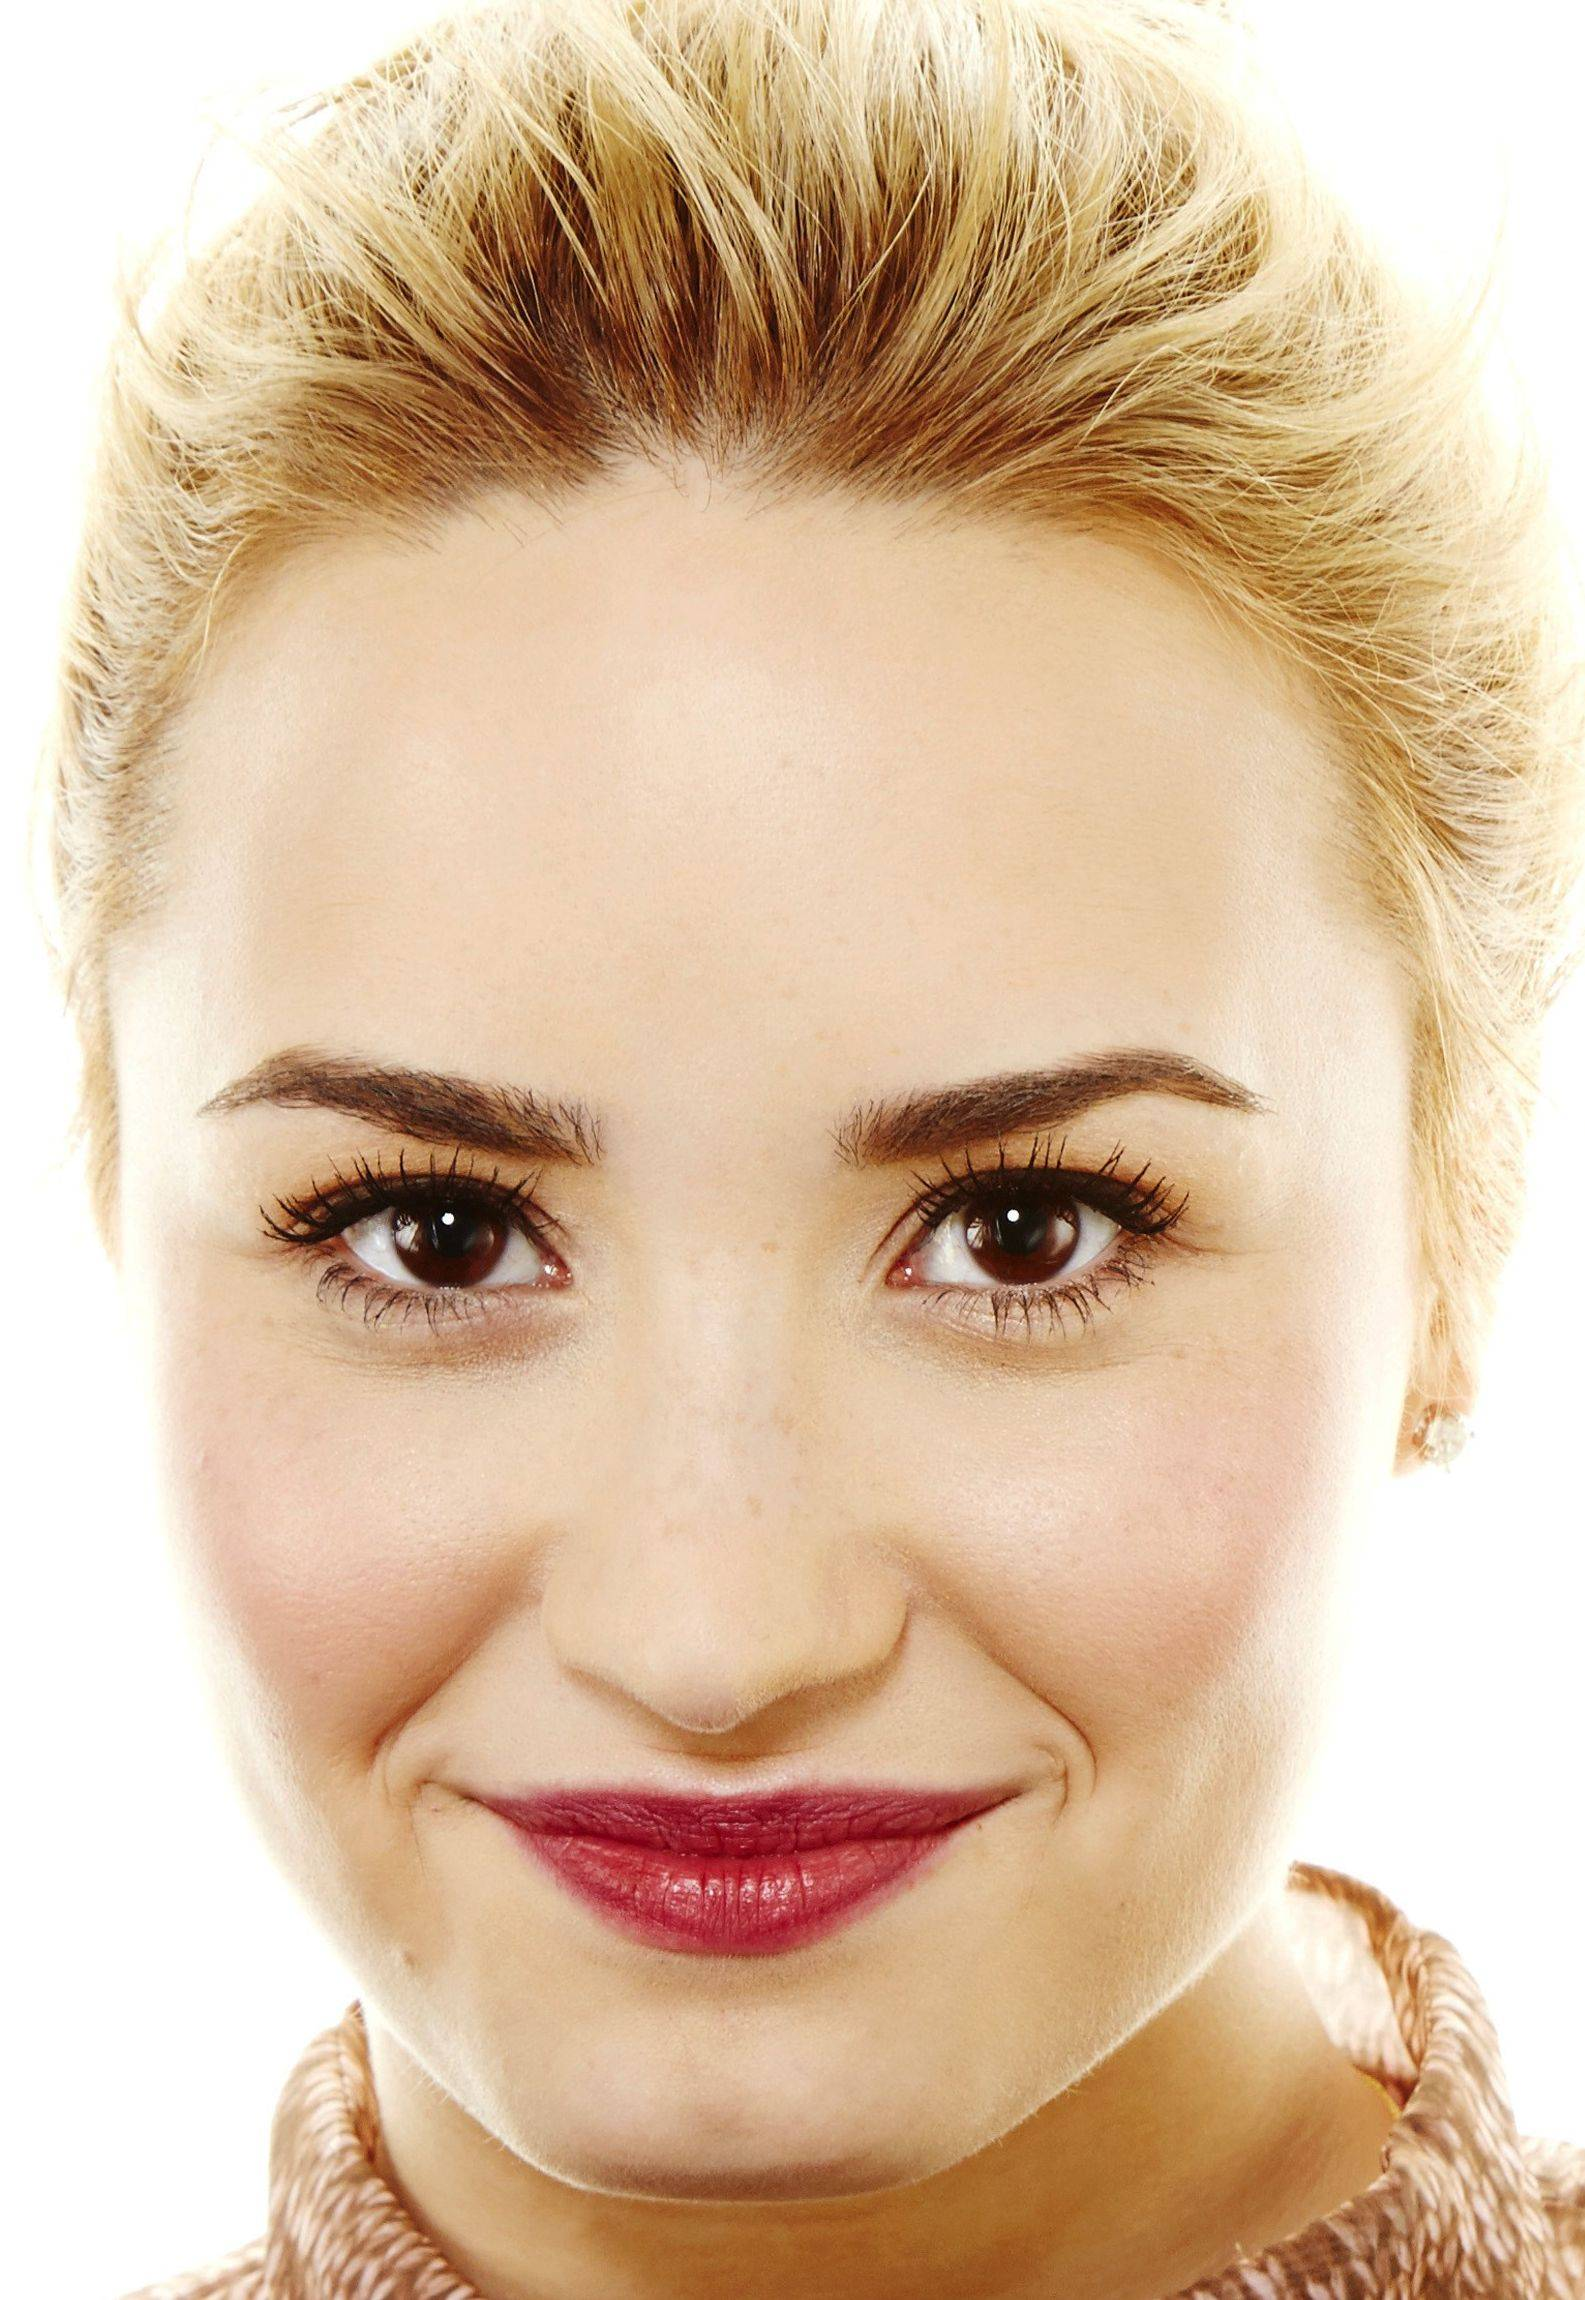 Tickets for singer Demi Lovato�s March 14 concert at the Allstate Arena in Rosemont go on sale to the public beginning at 10 a.m. Saturday, Oct. 5.